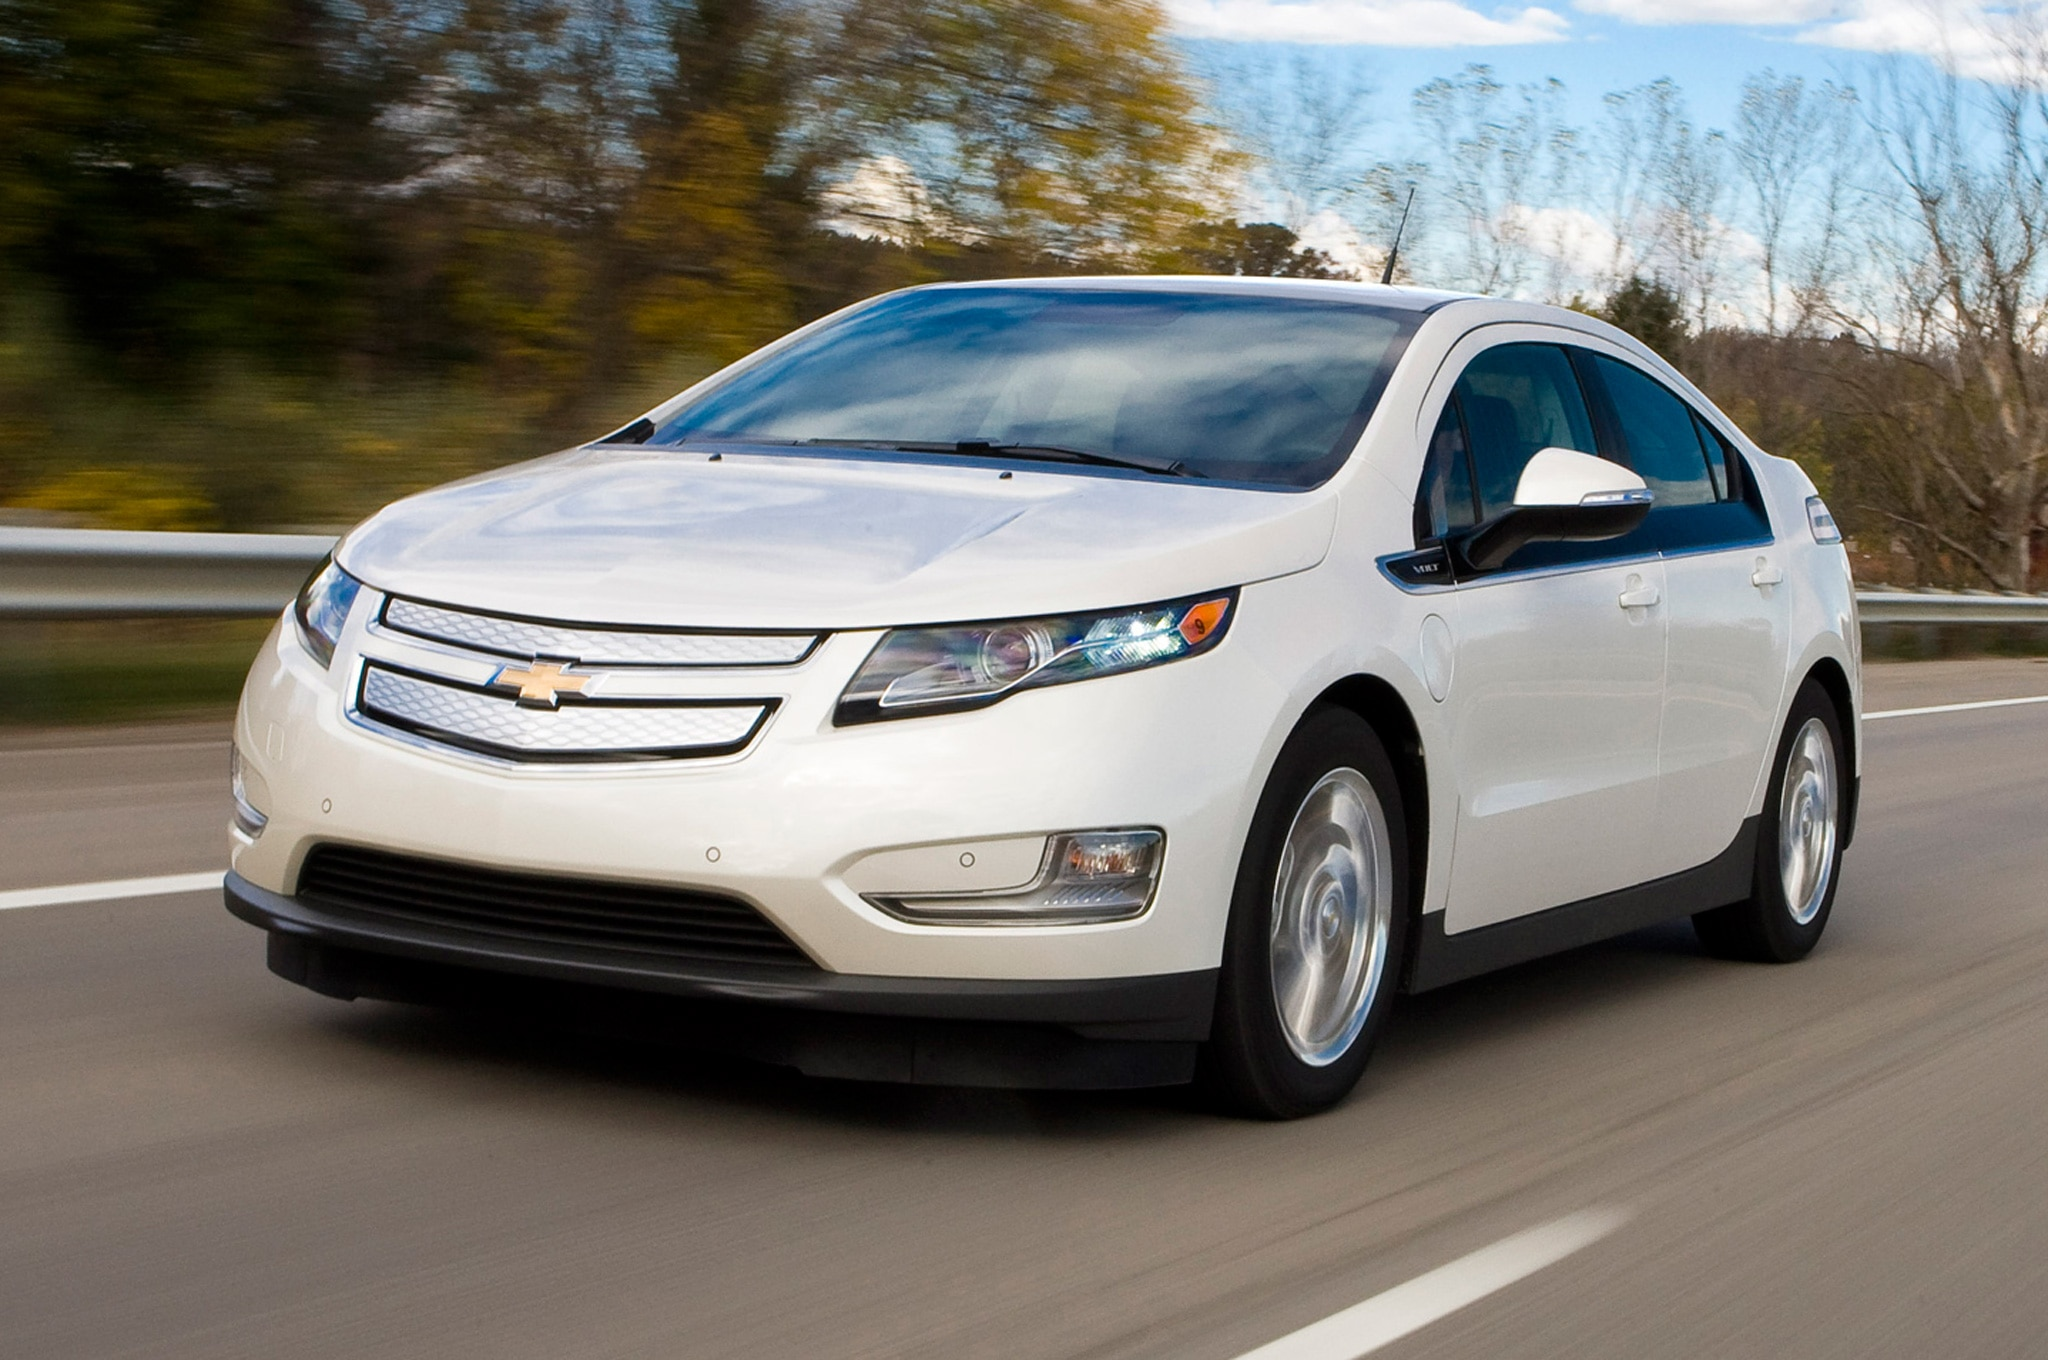 2014 Chevrolet Volt Front Three Quarters View In White1